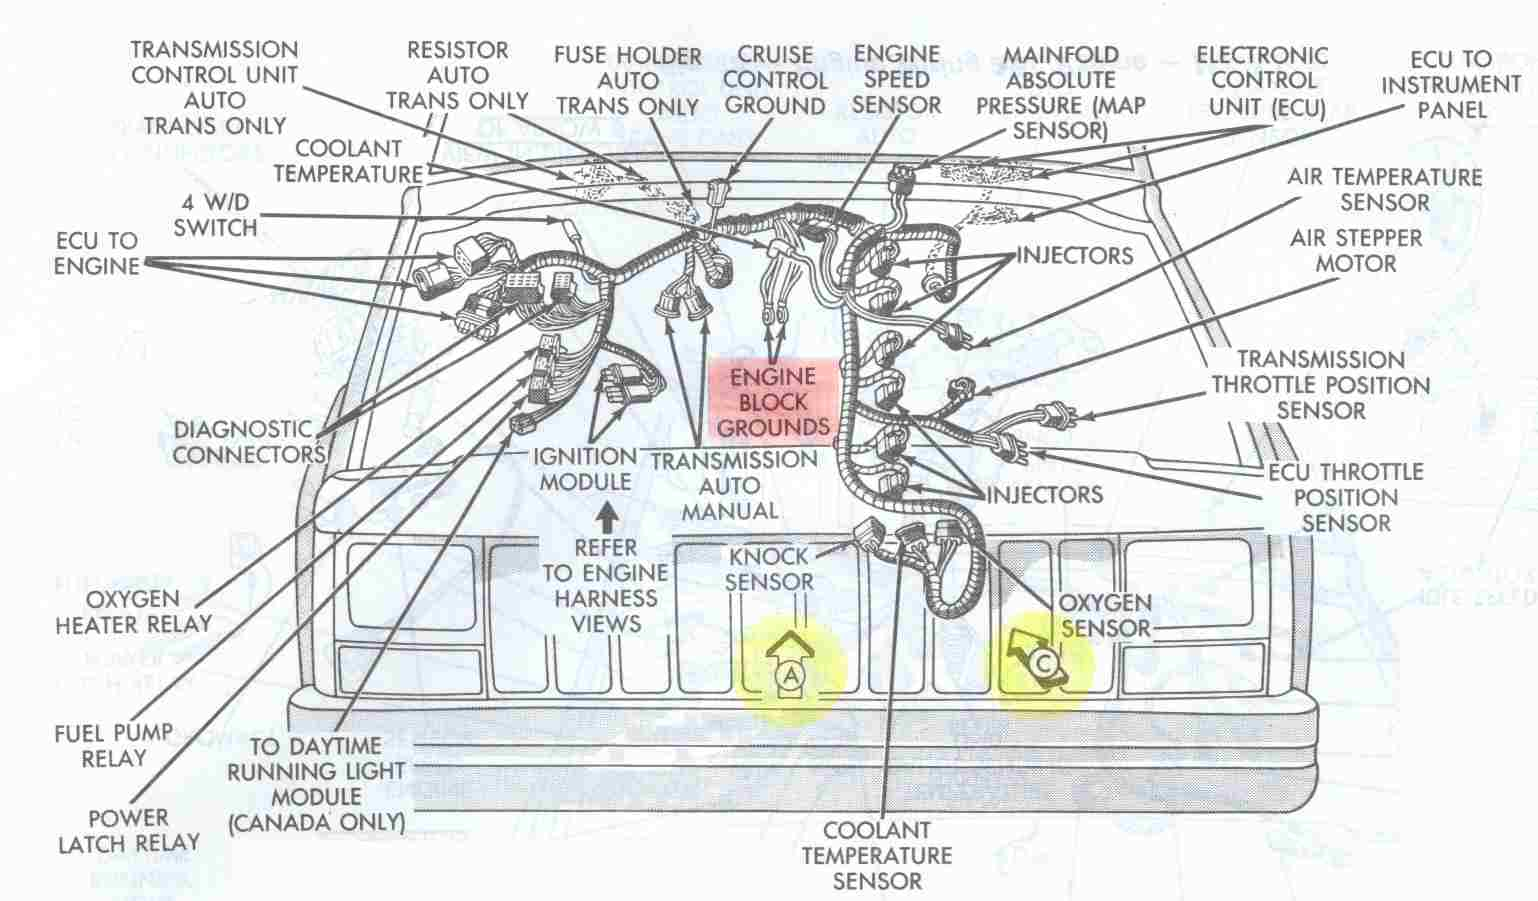 Electrical_Engine_Ground_Points_Overview 98 jeep cherokee engine diagram on 98 download wirning diagrams 96 jeep cherokee wiring diagram at honlapkeszites.co